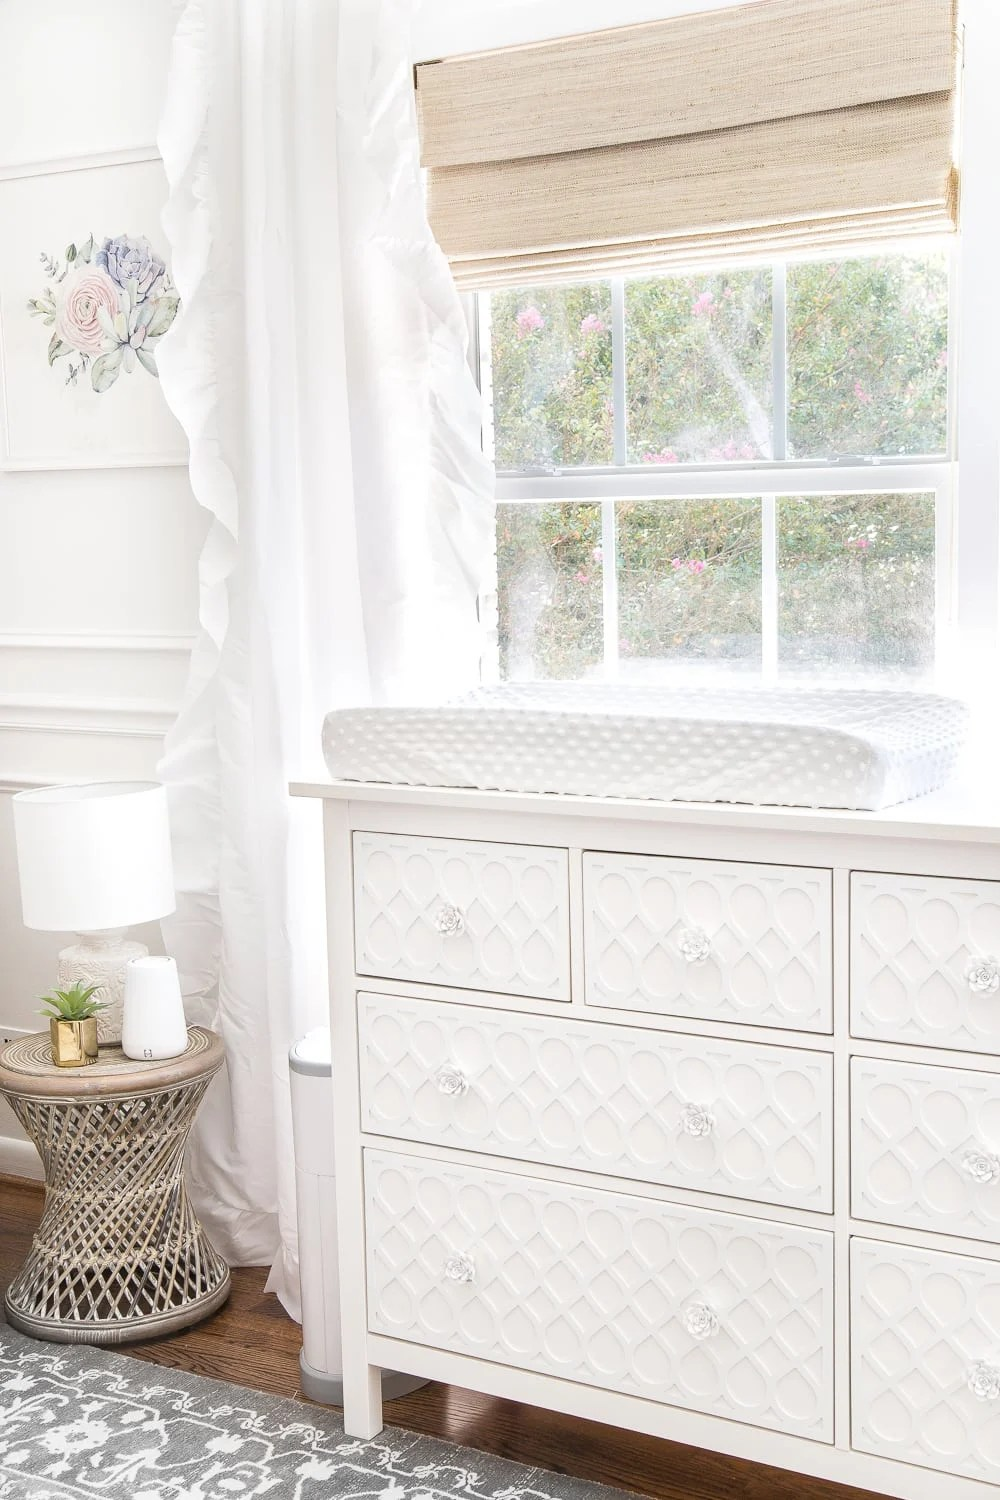 An all white nursery makeover room reveal with classic, vintage style furniture, Anthropologie-inspired patterns and textures, and floral accents.